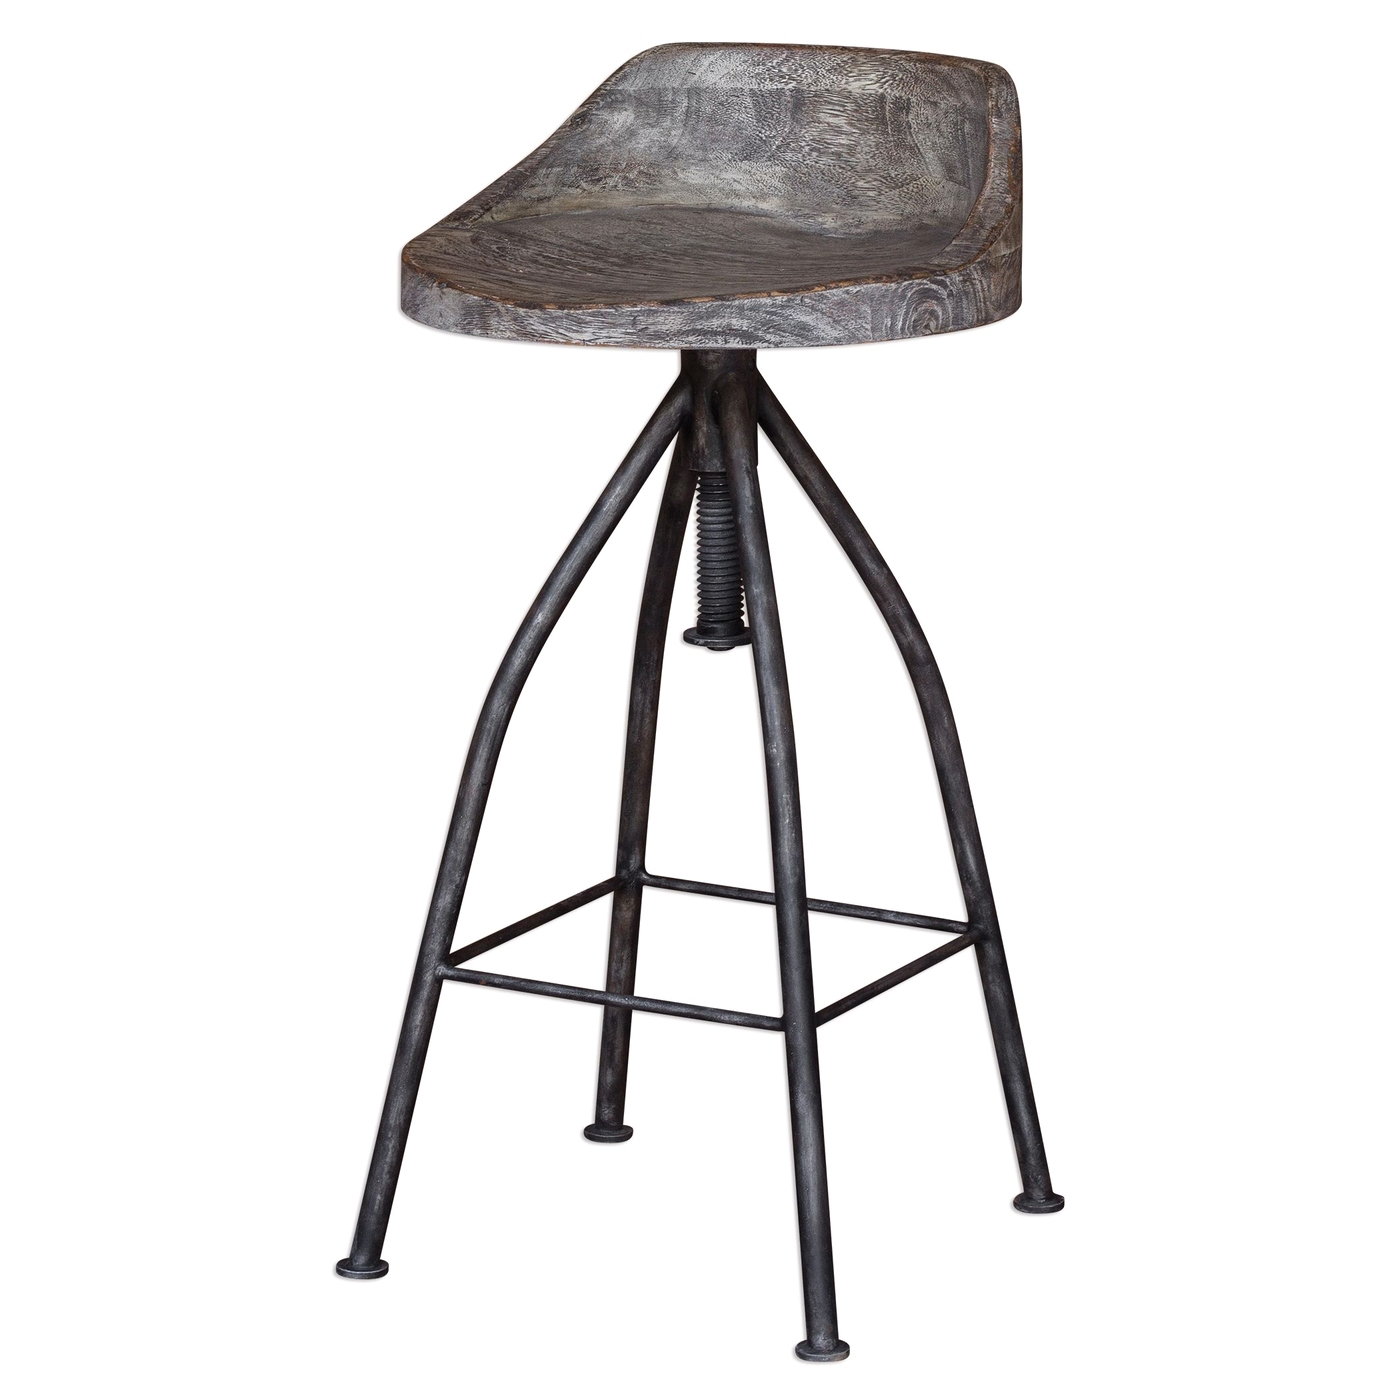 Kairu Rustic Wood Iron Bar Stool With Industrial Swivel Screw Gray Glazed Seat